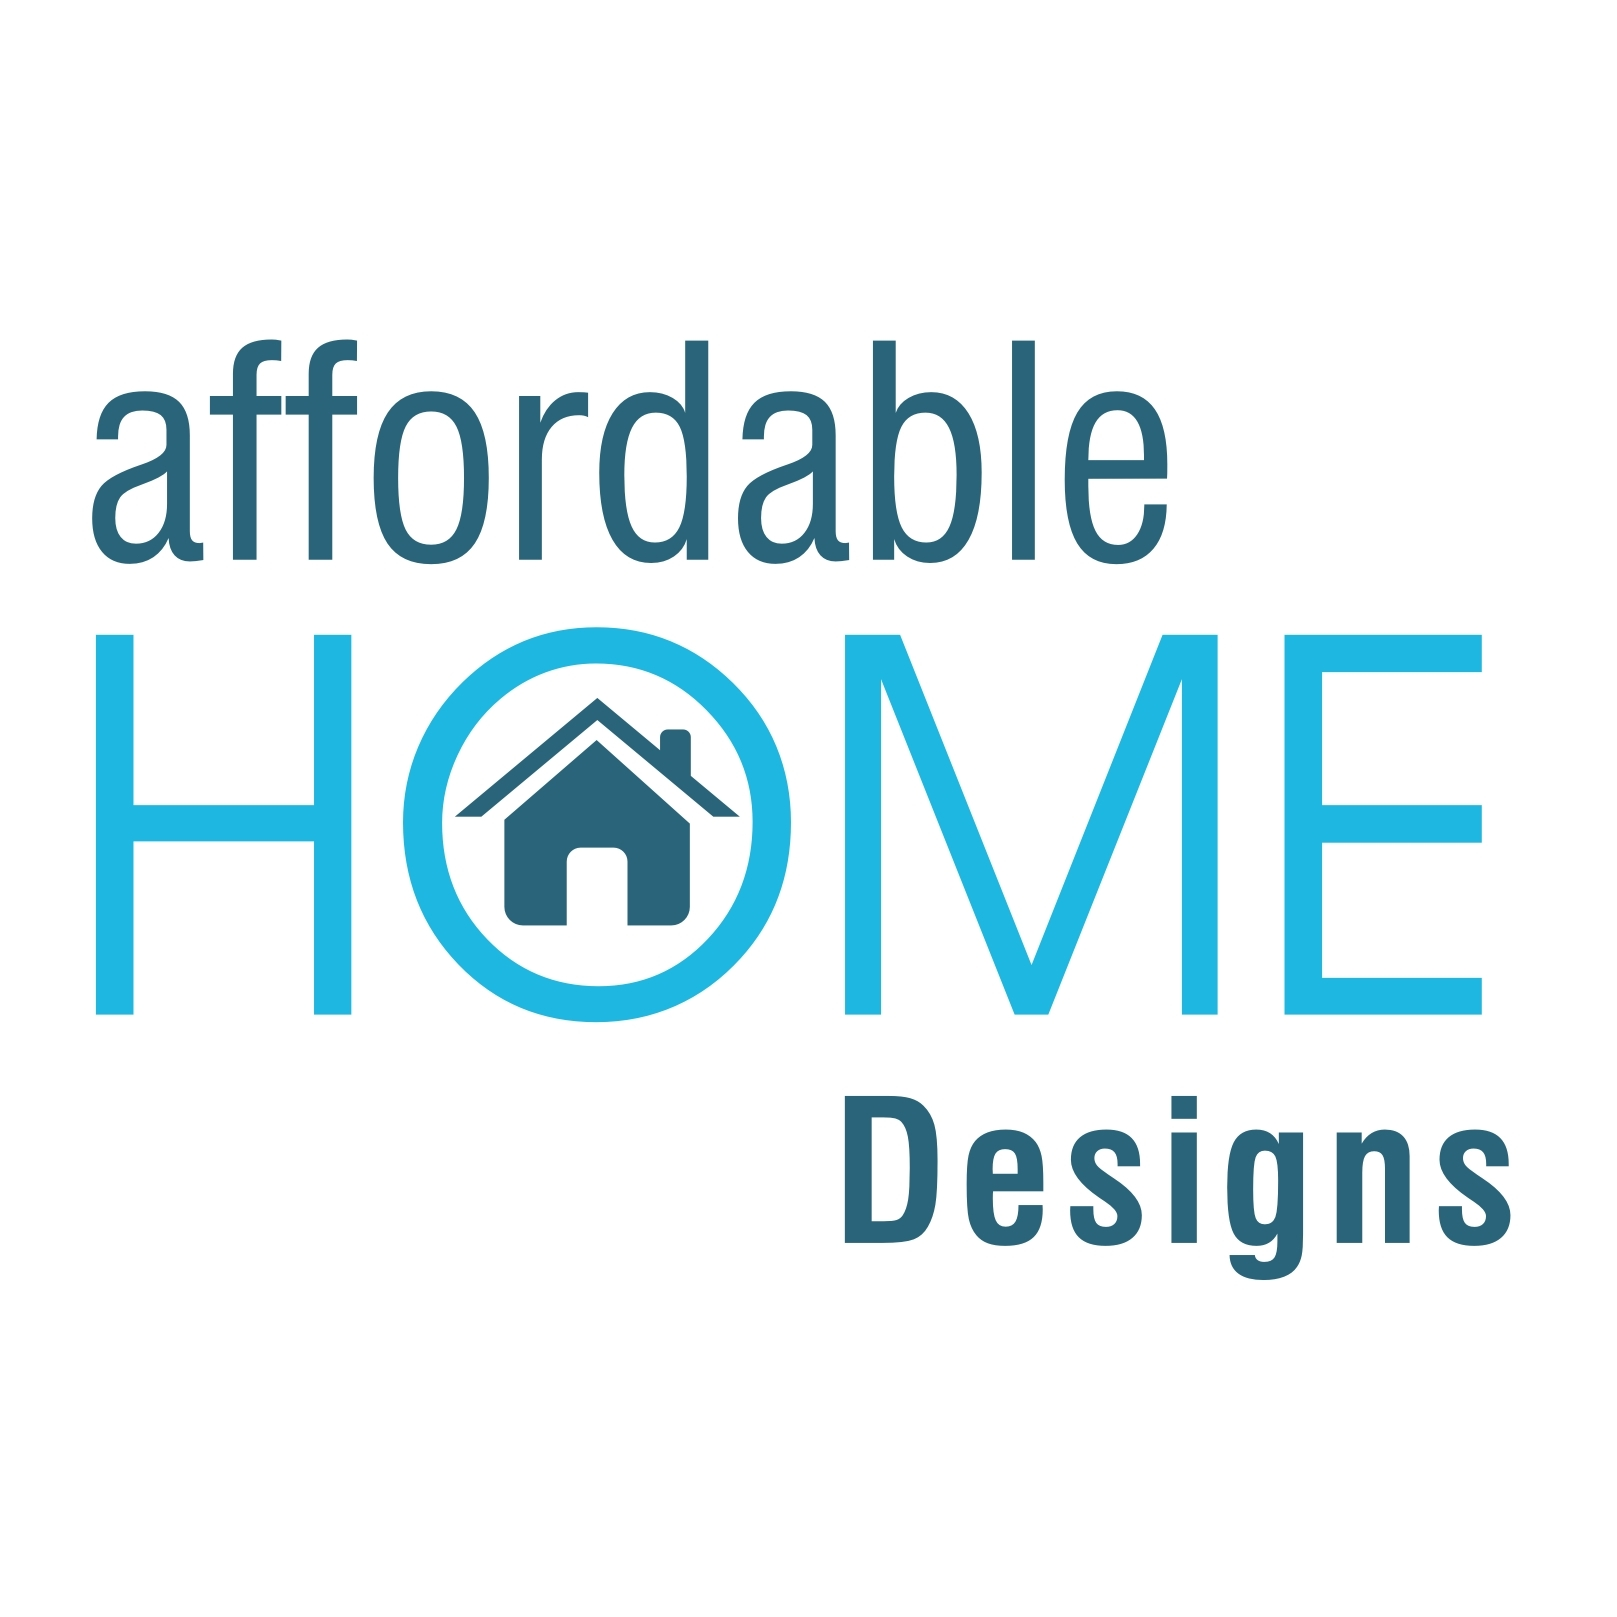 Affordable home designs architectural services in dudley for Affordable home designs